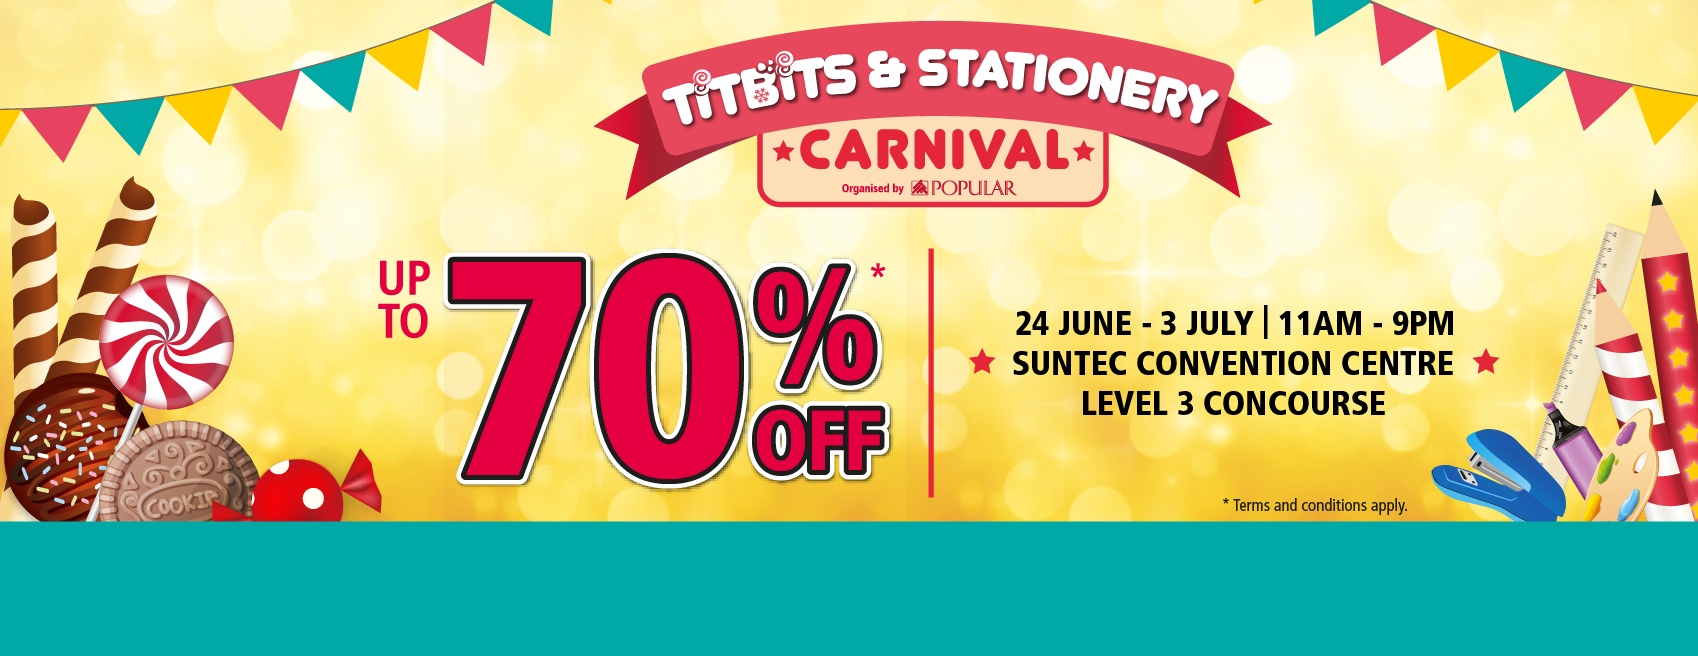 POPULAR Titbits & Stationery Carnival 2016